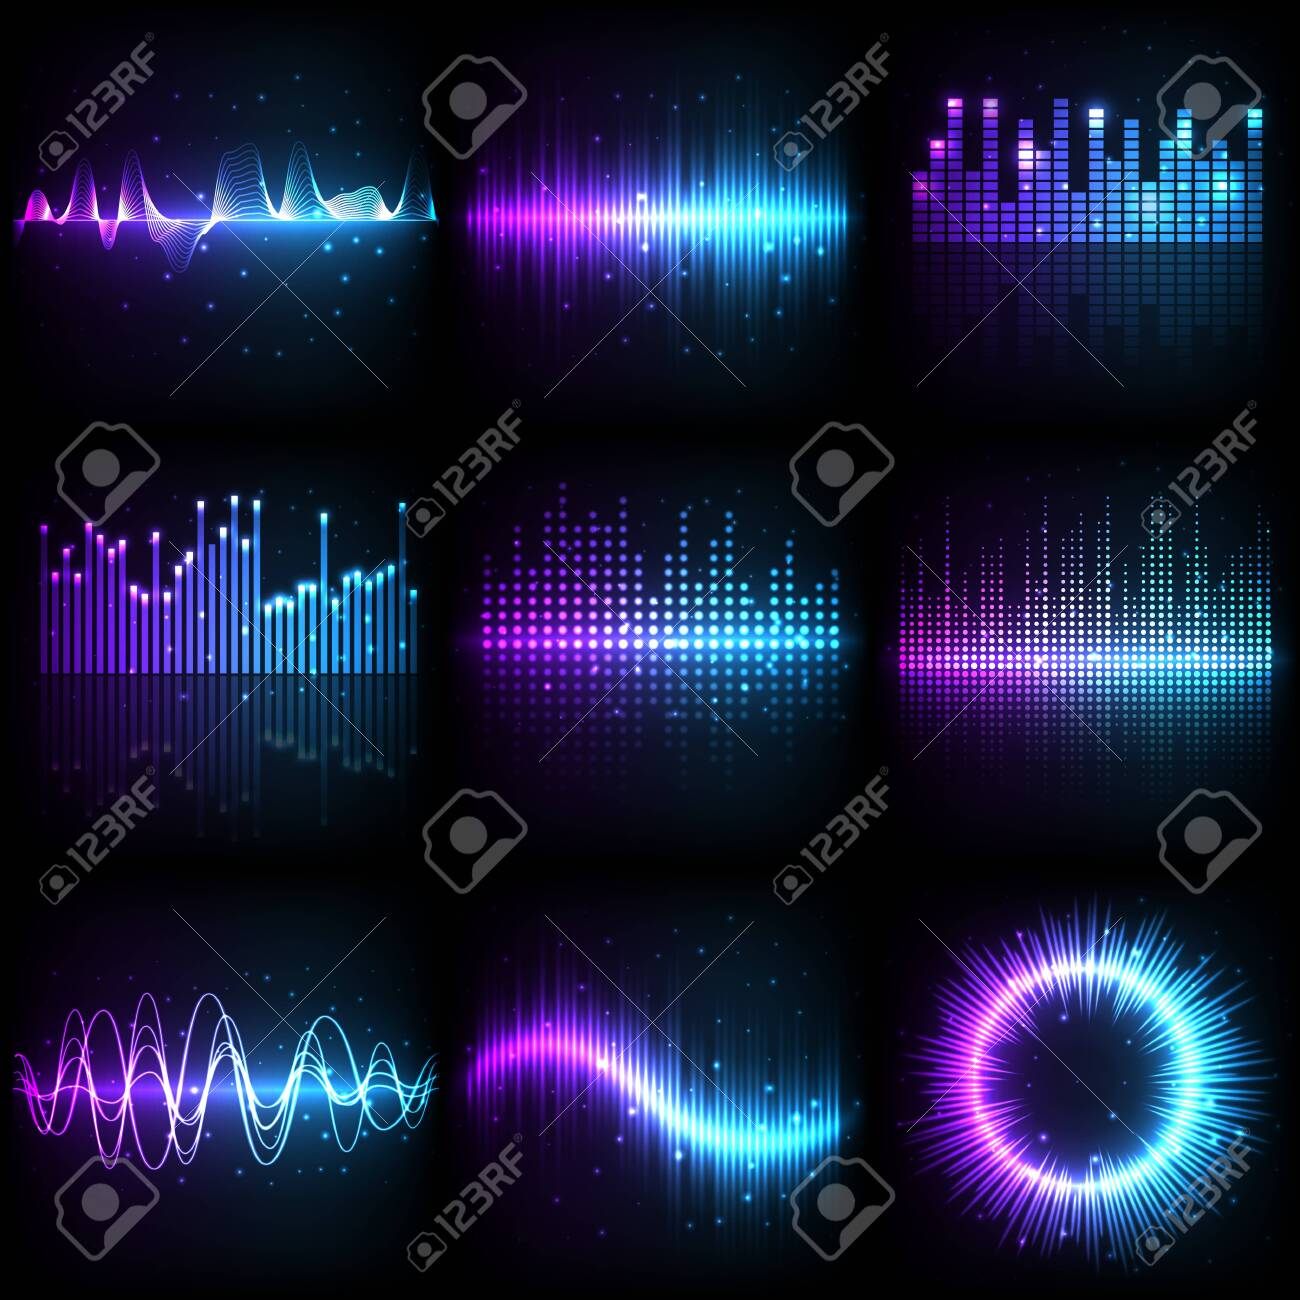 Sound wave, music audio equalizer with frequency pattern, vector different shapes. Abstract music sound wave of purple and blue neon light colors, electronic amplifier and beat record spectrum graphic - 135934186